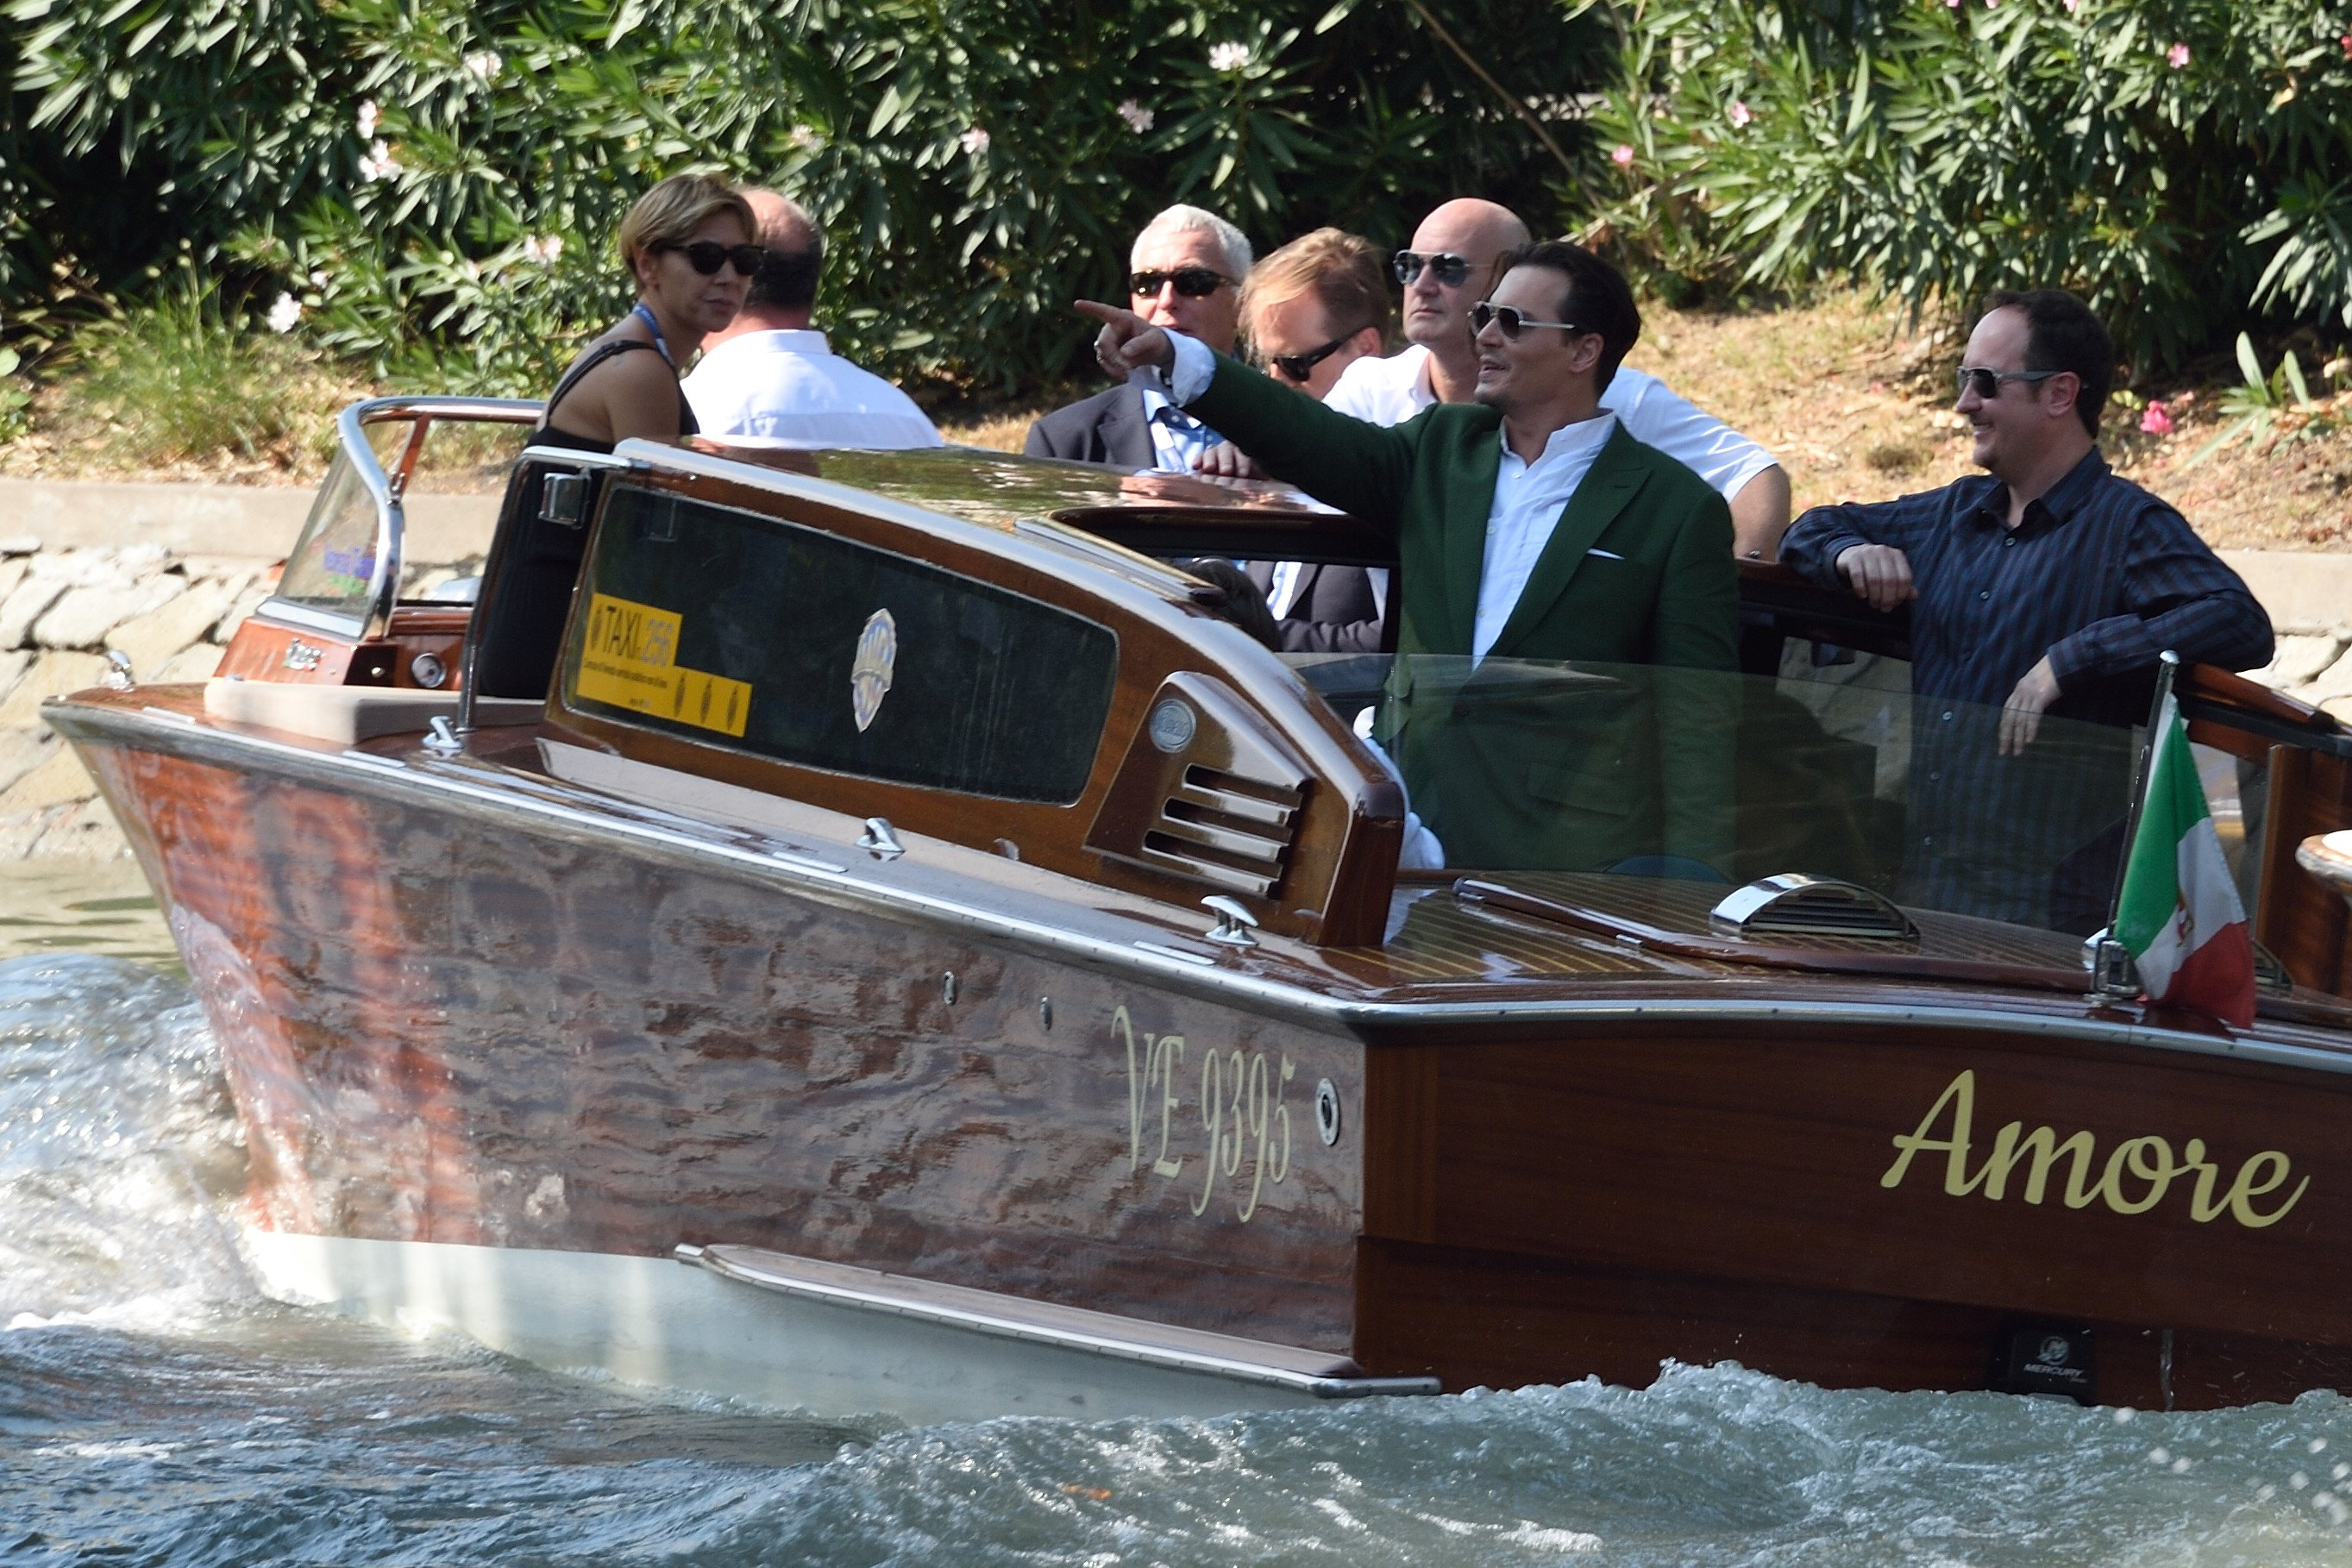 Johnny Depp coming out from the Casino during the 72nd Venice International Film Festival (Mostra) on the Lido in Venice, Italy on September 04, 2015. Photo by Aurore Marechal/ABACAPRESS.COM